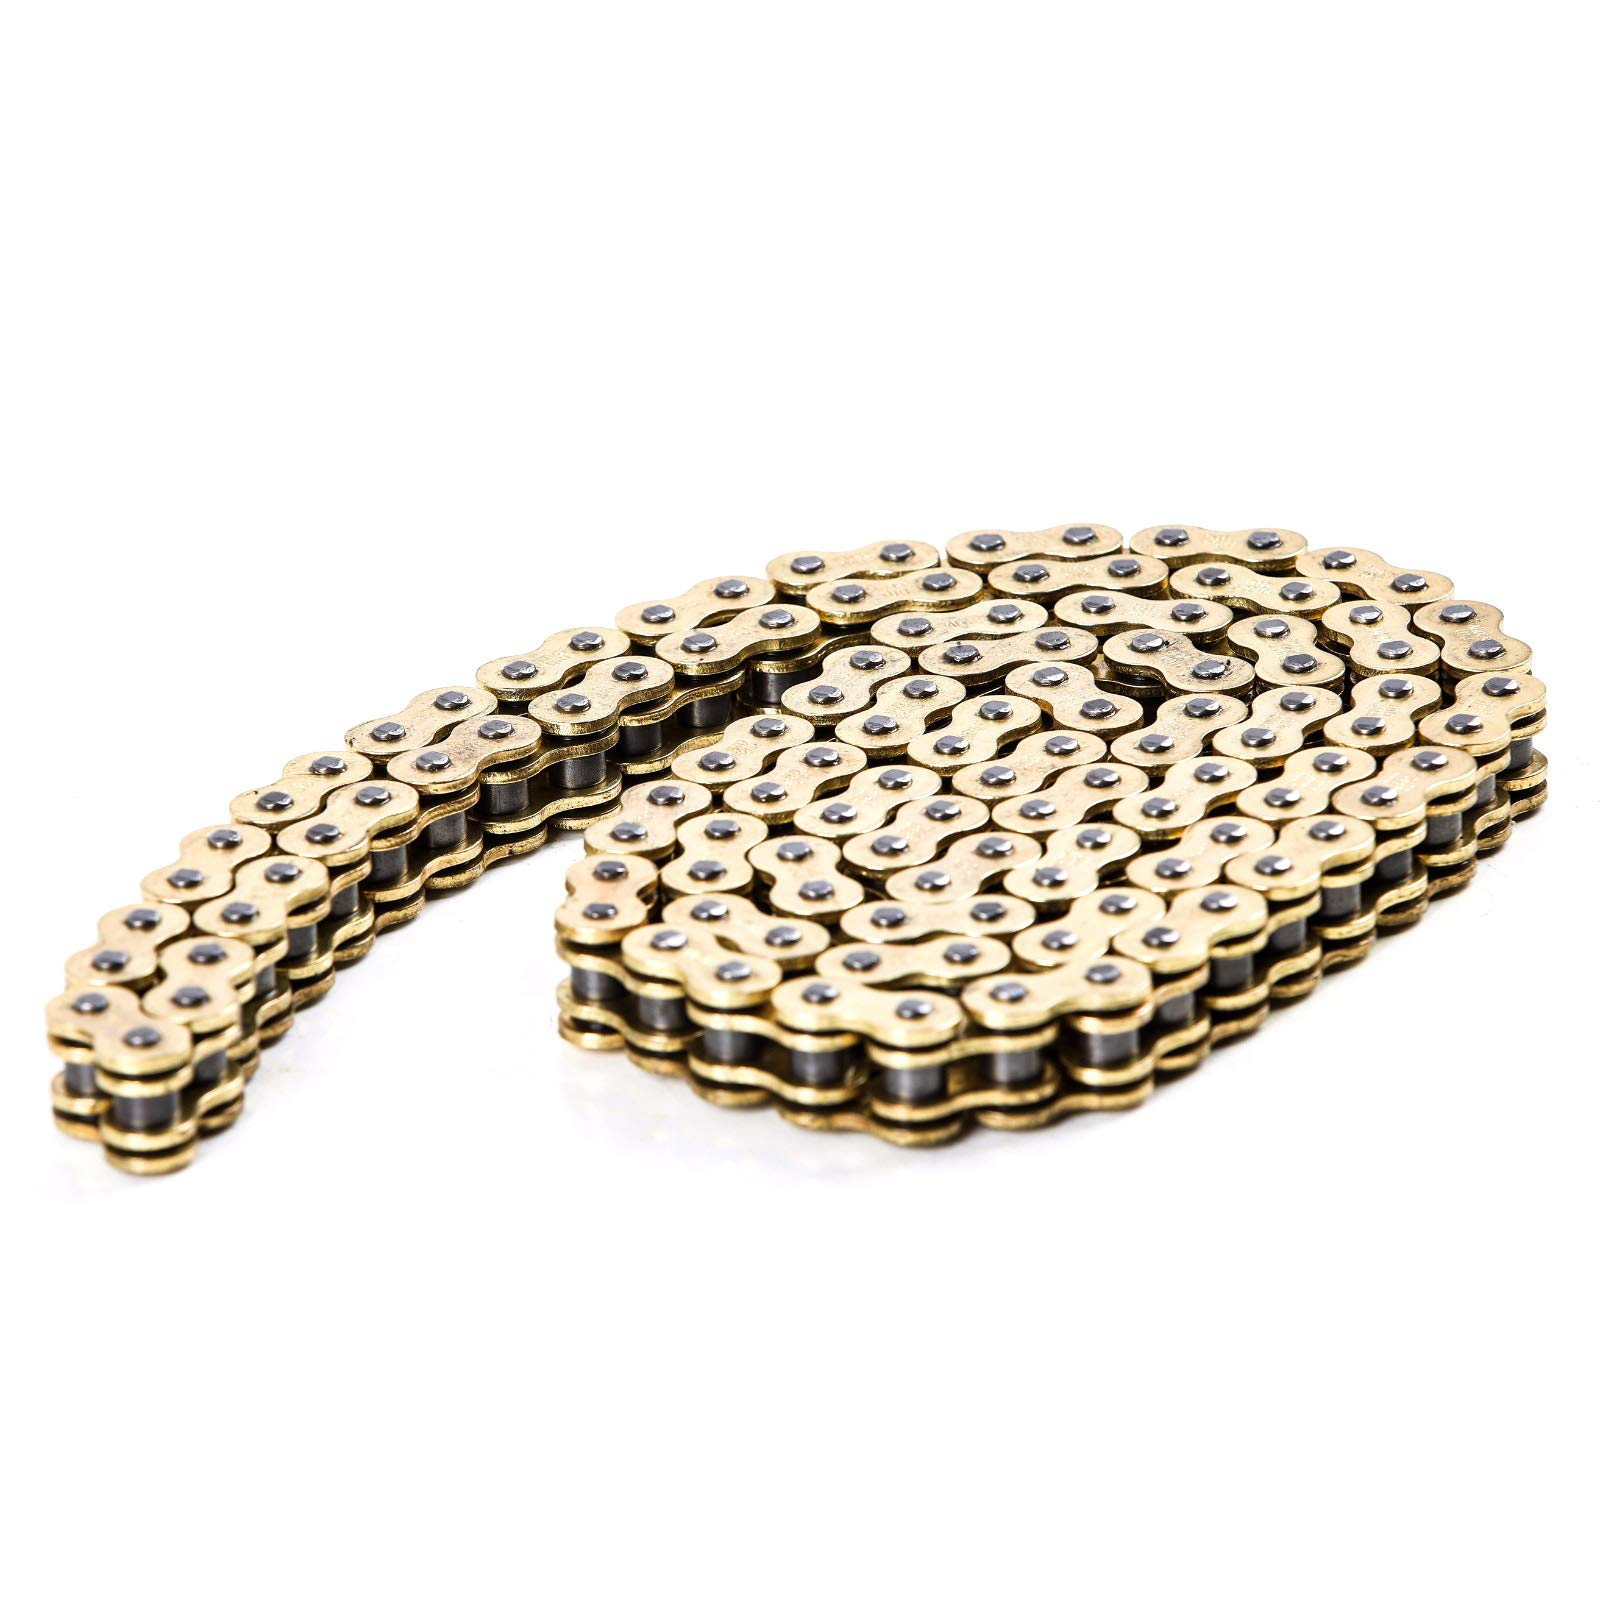 JCMOTO D.I.D 520 O Ring Chain 120 Link For Yamaha YZ125 YZ250 YZ250F YZ450F WR450F Gold